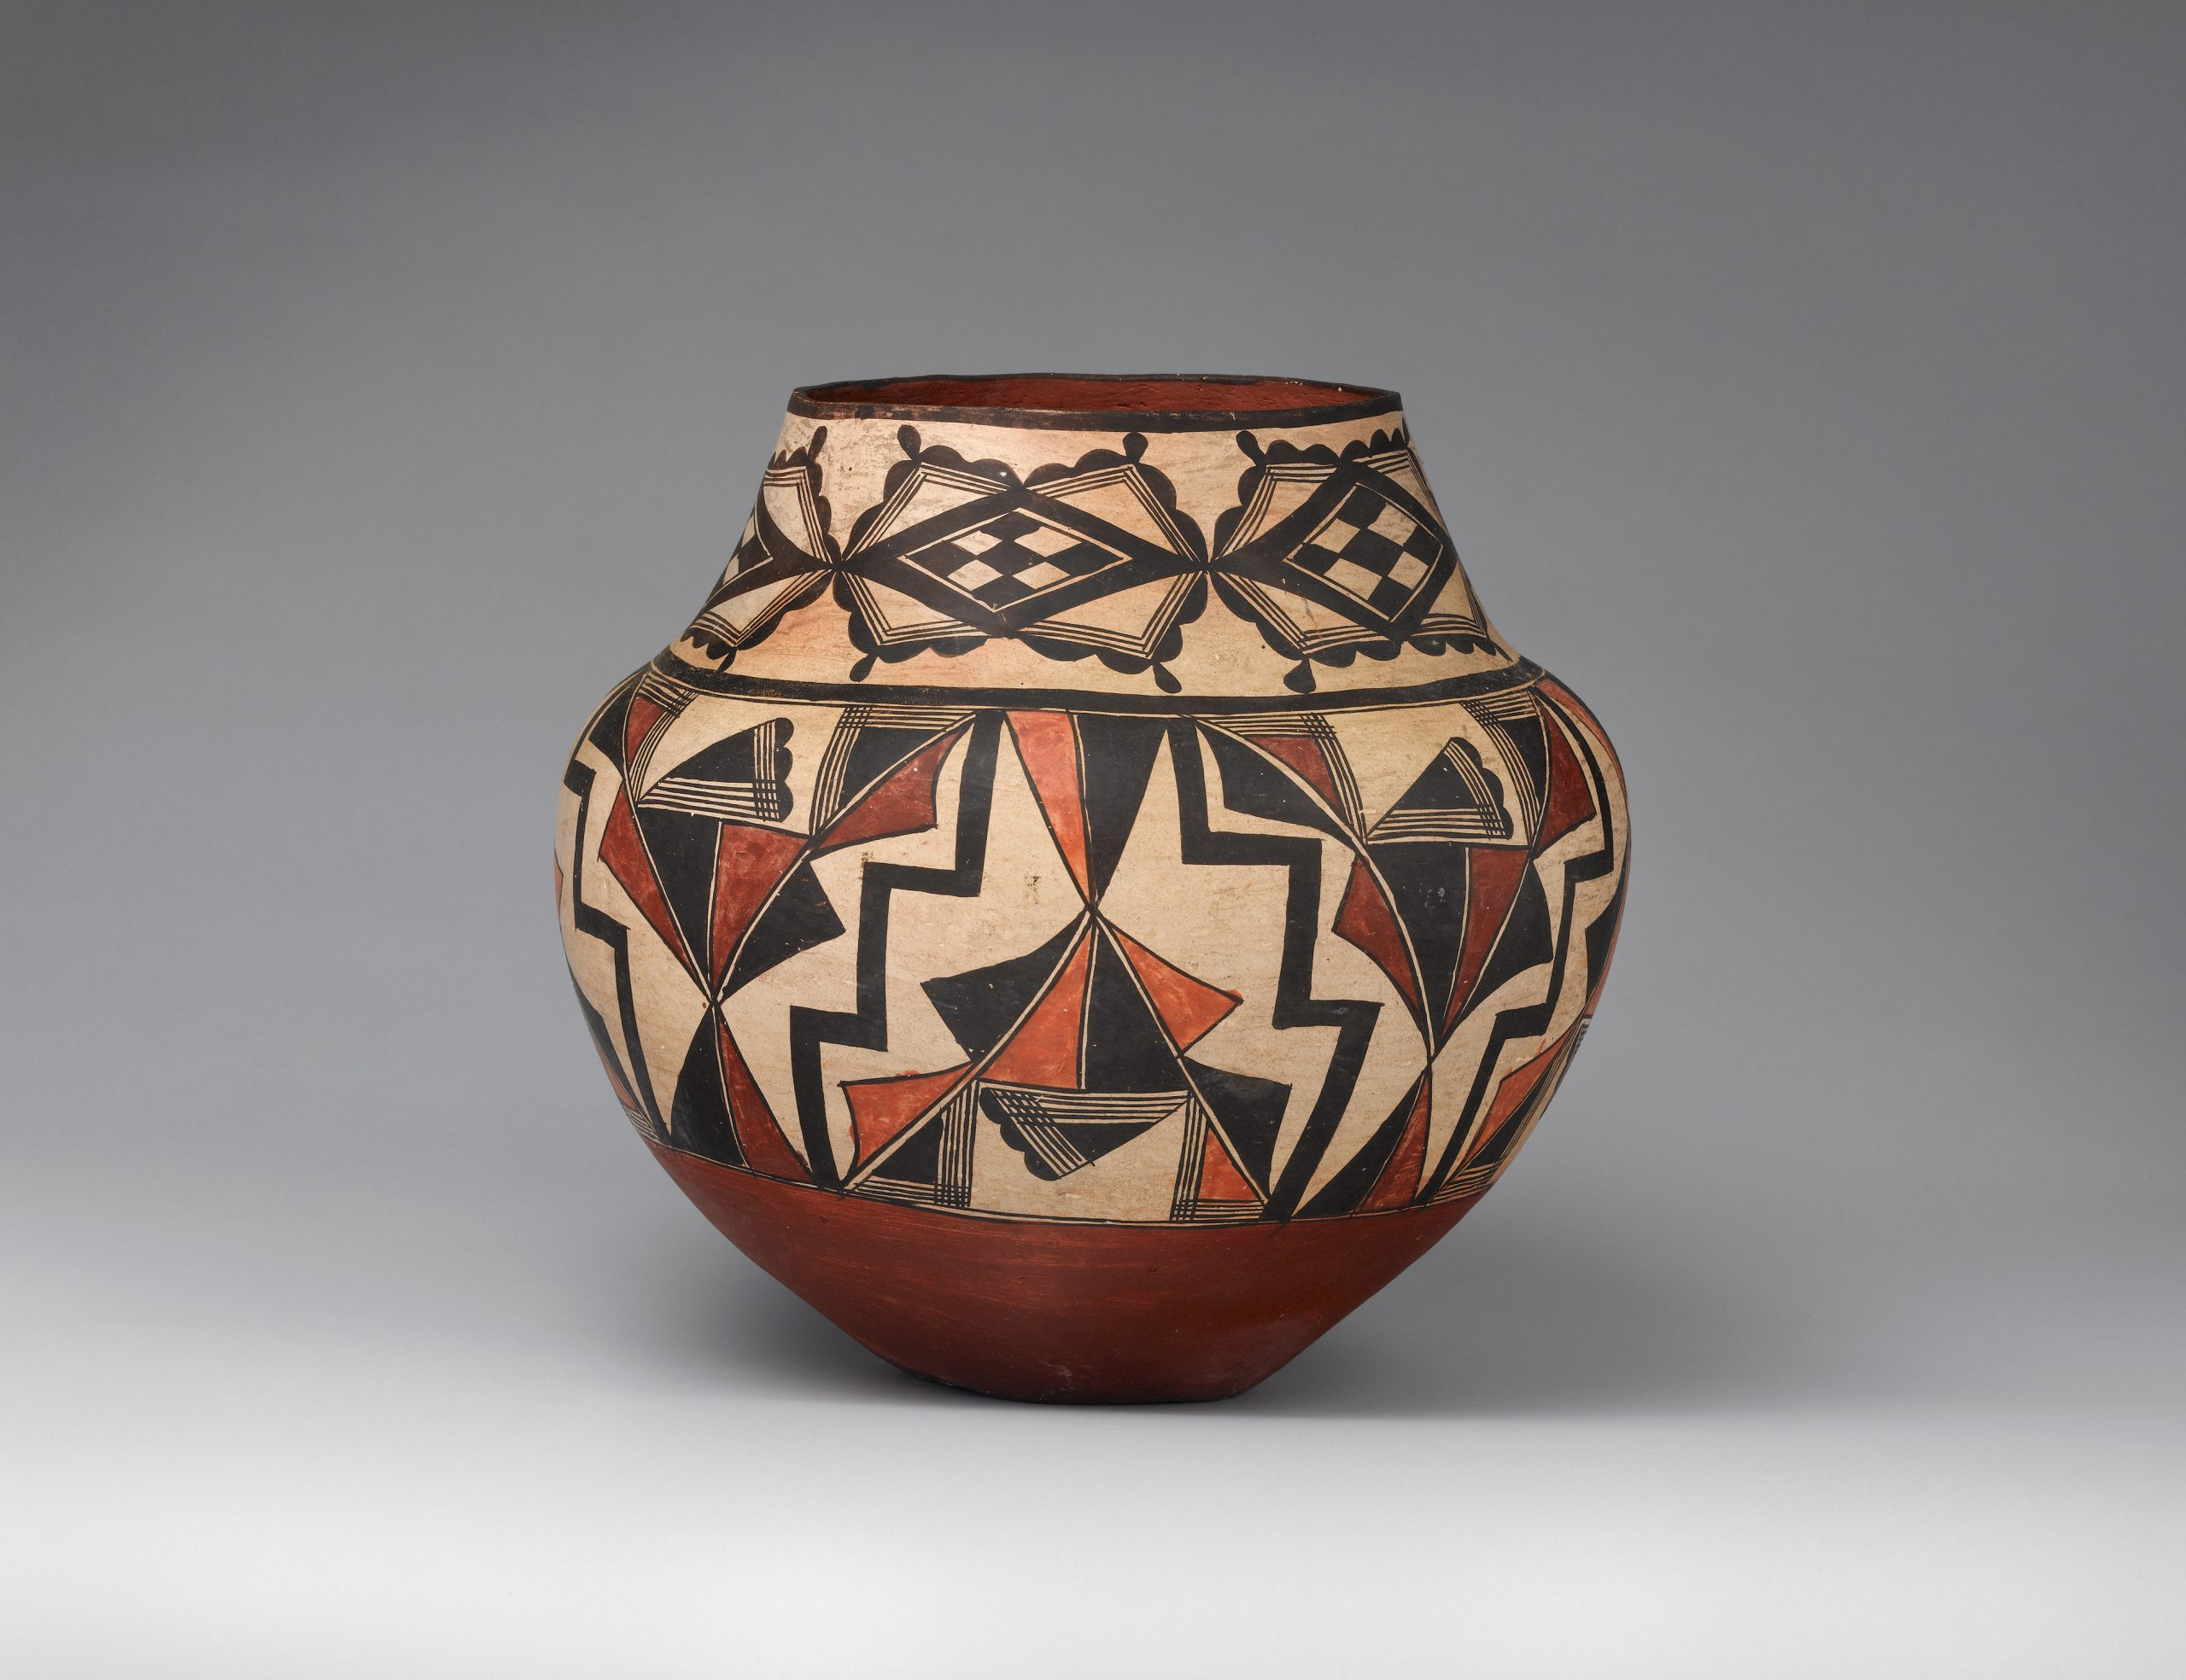 An Acoma jar decorated with black, beige, rust-brown, and red geometric patterns.